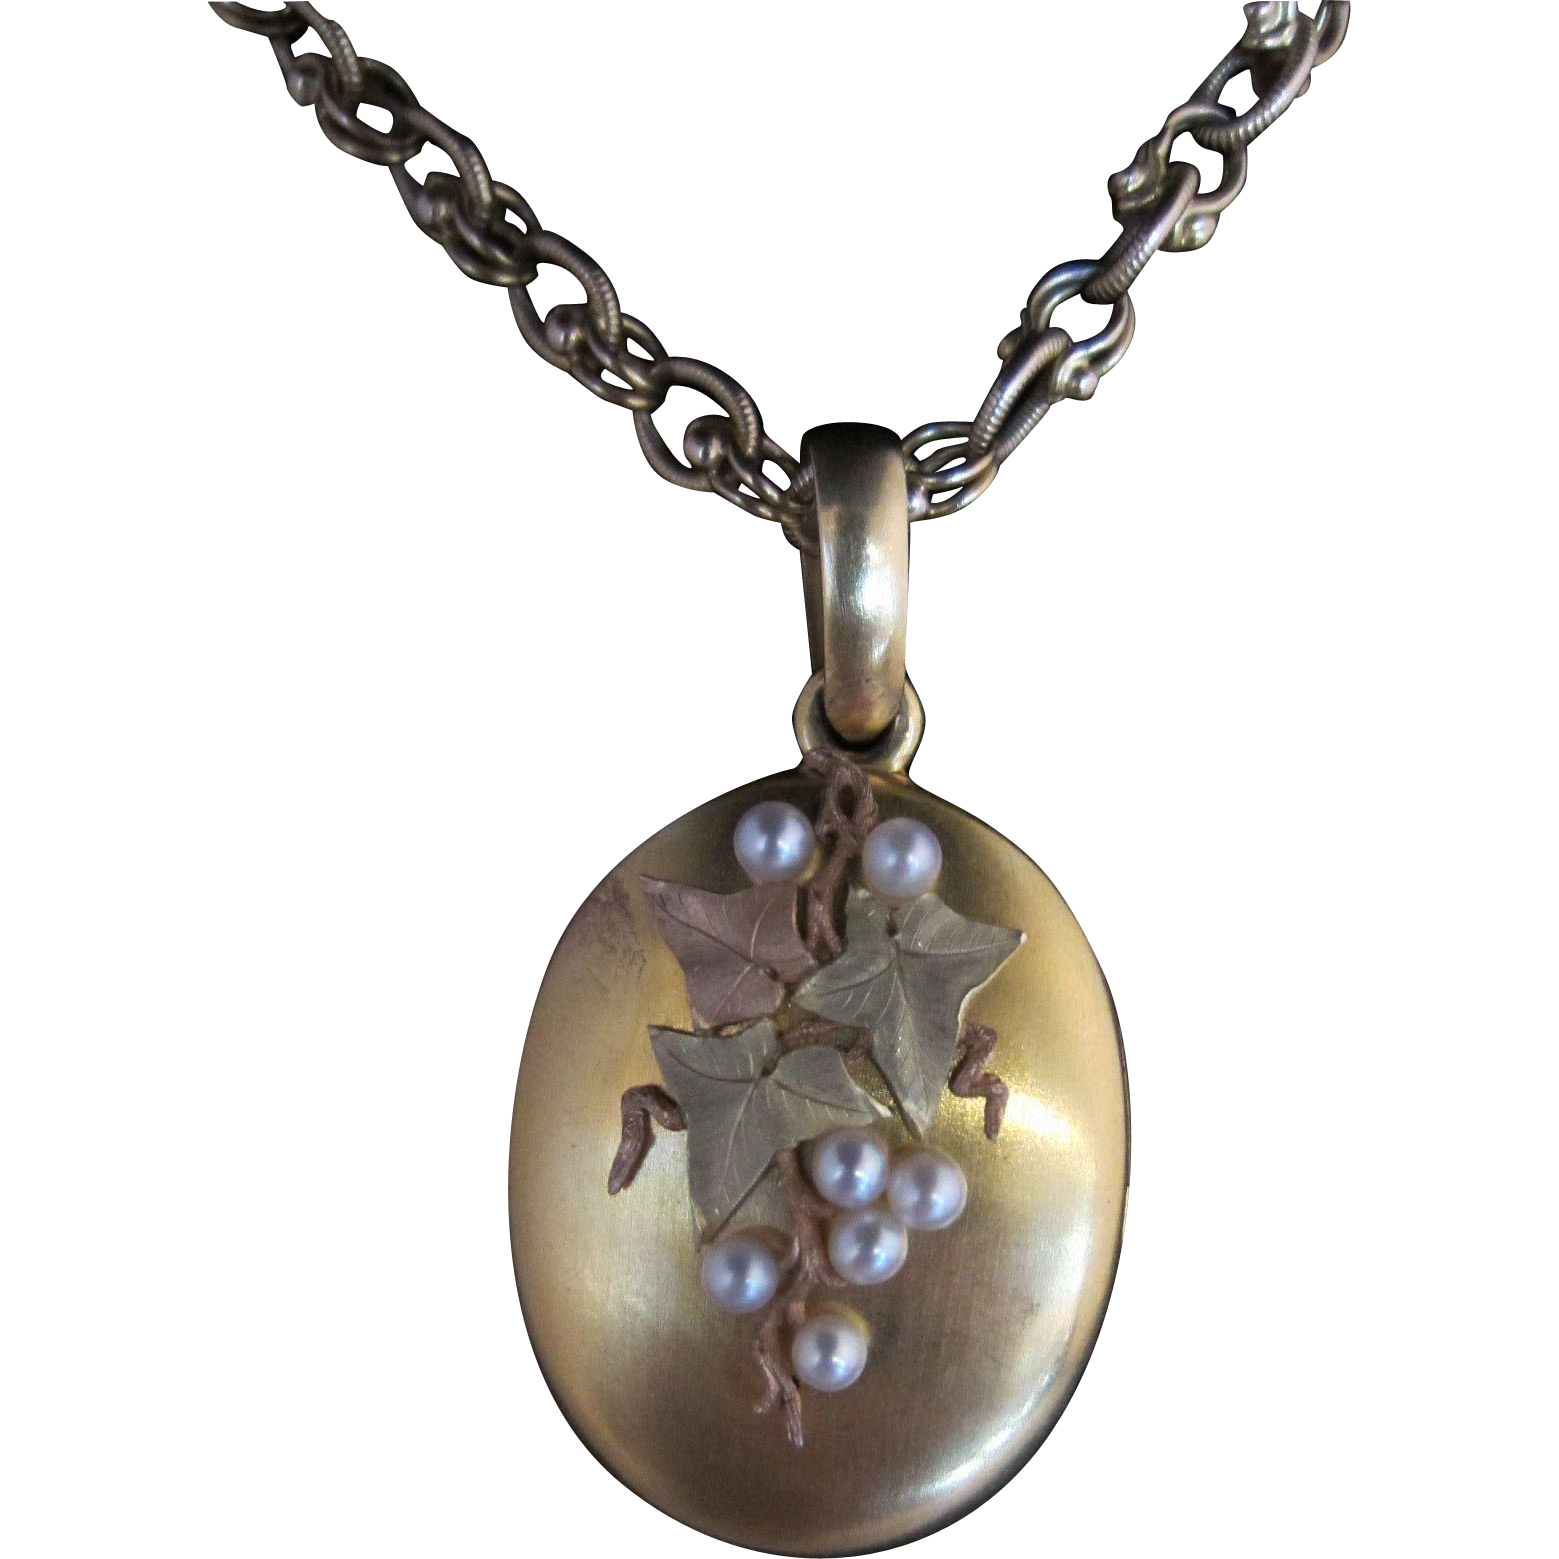 18k Three-Tone Gold Locket with Pearls